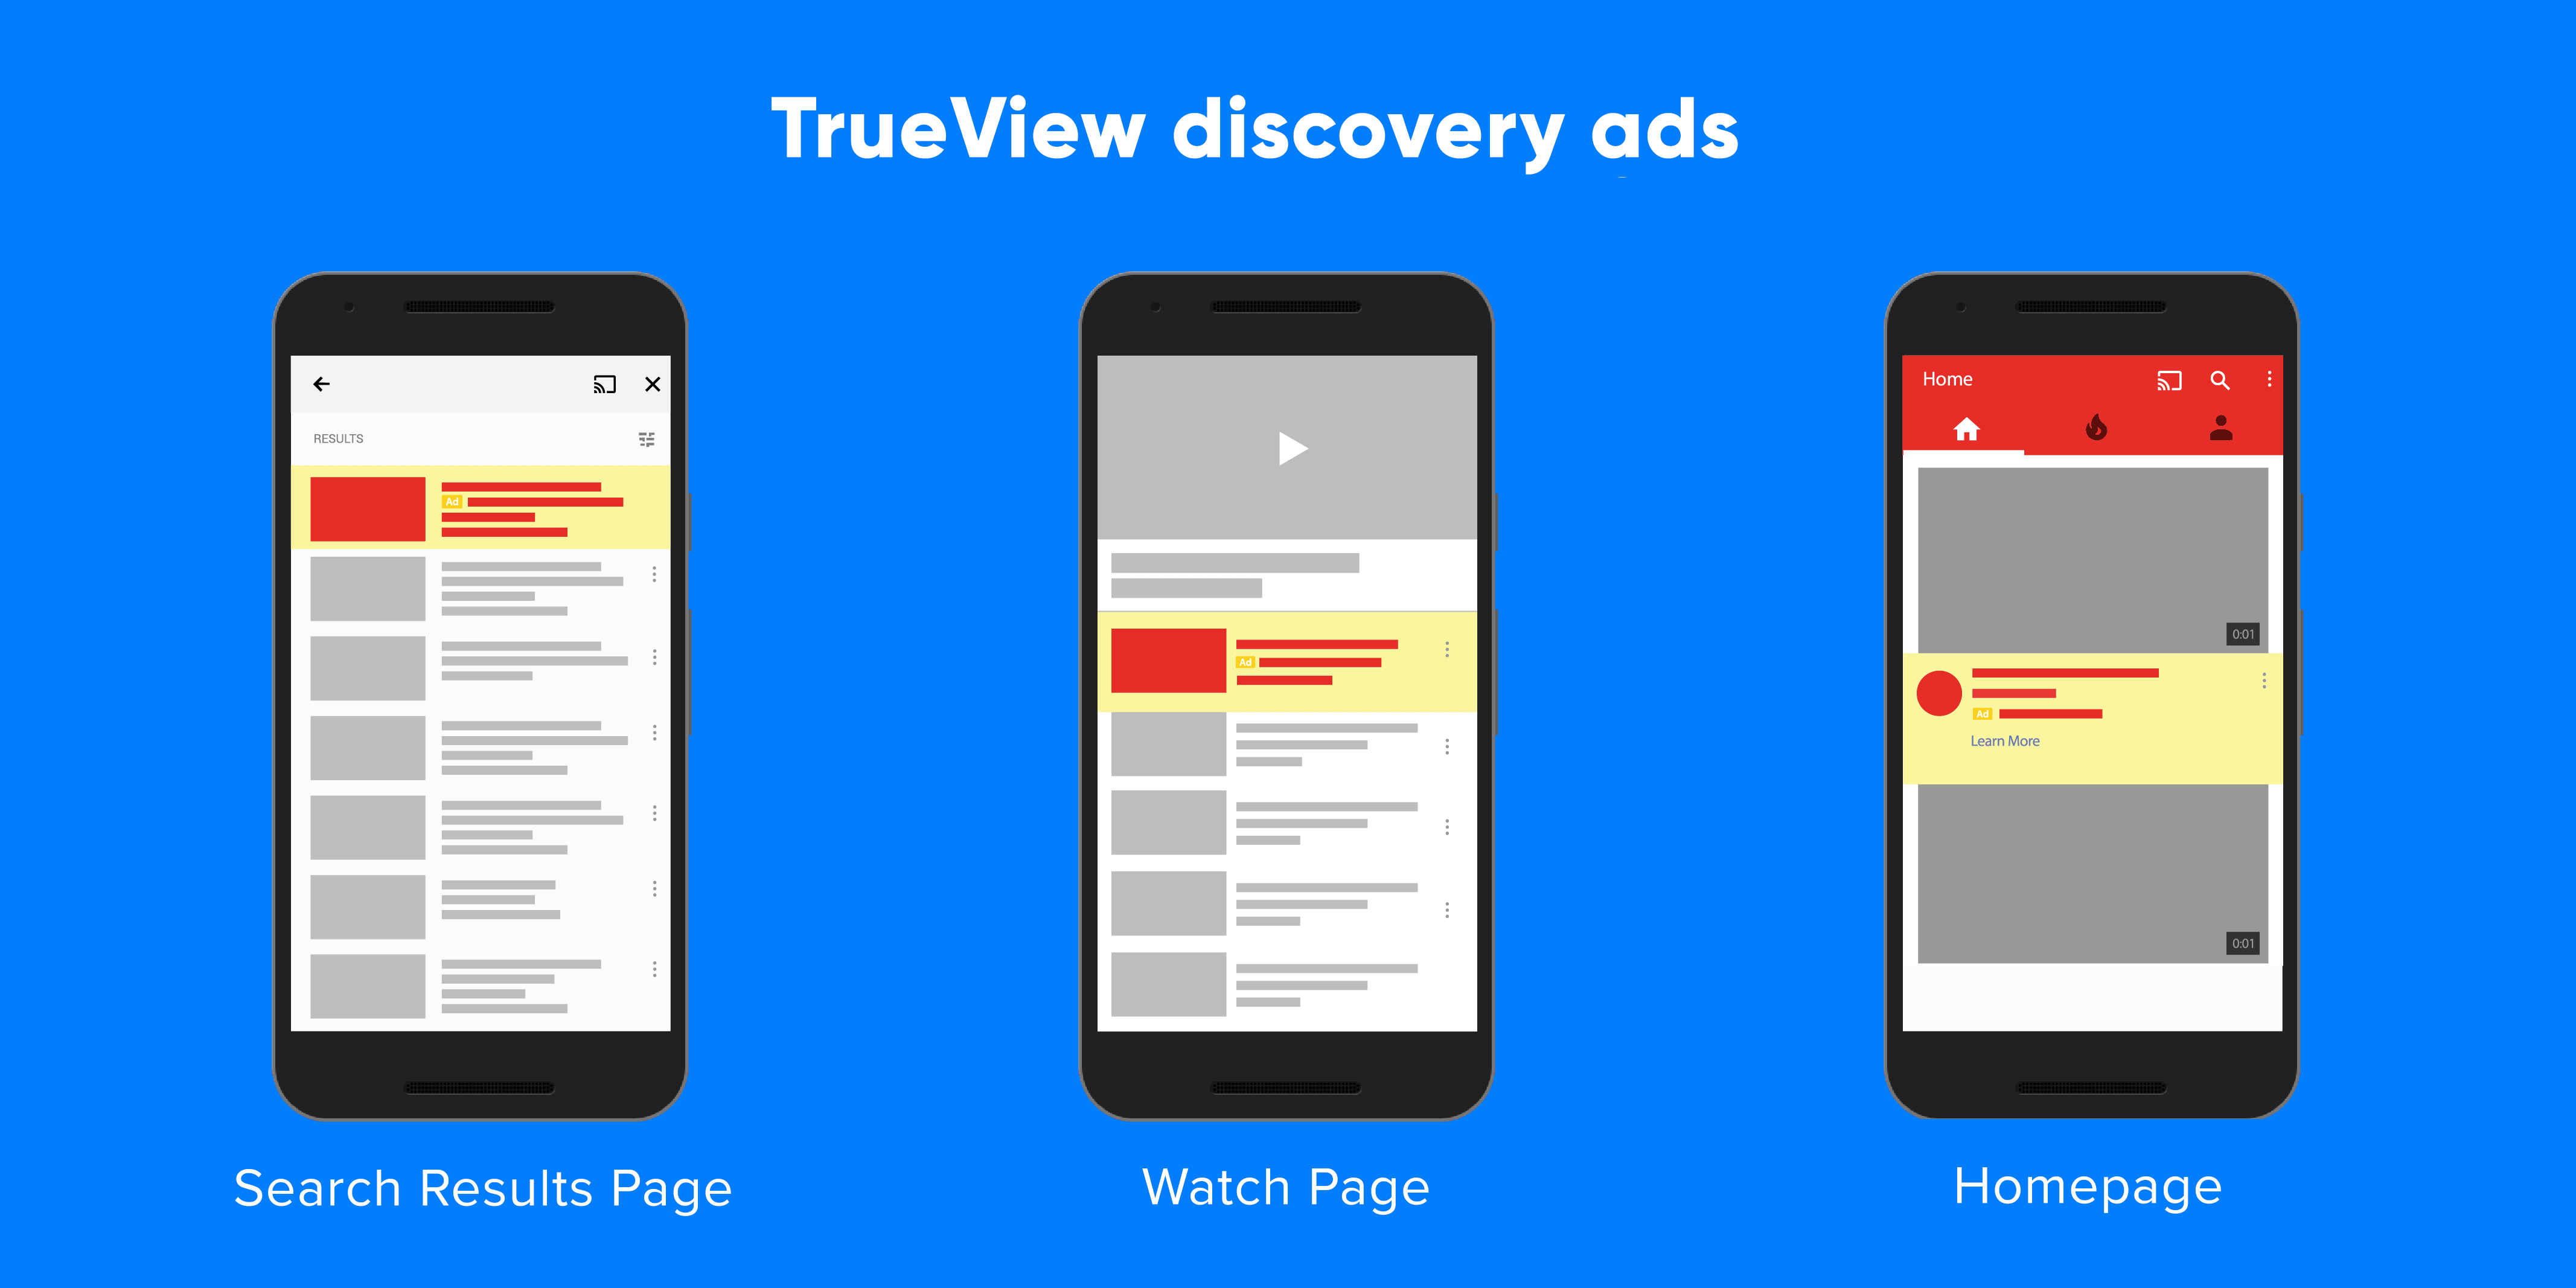 Where can TrueView discovery ads be viewed?